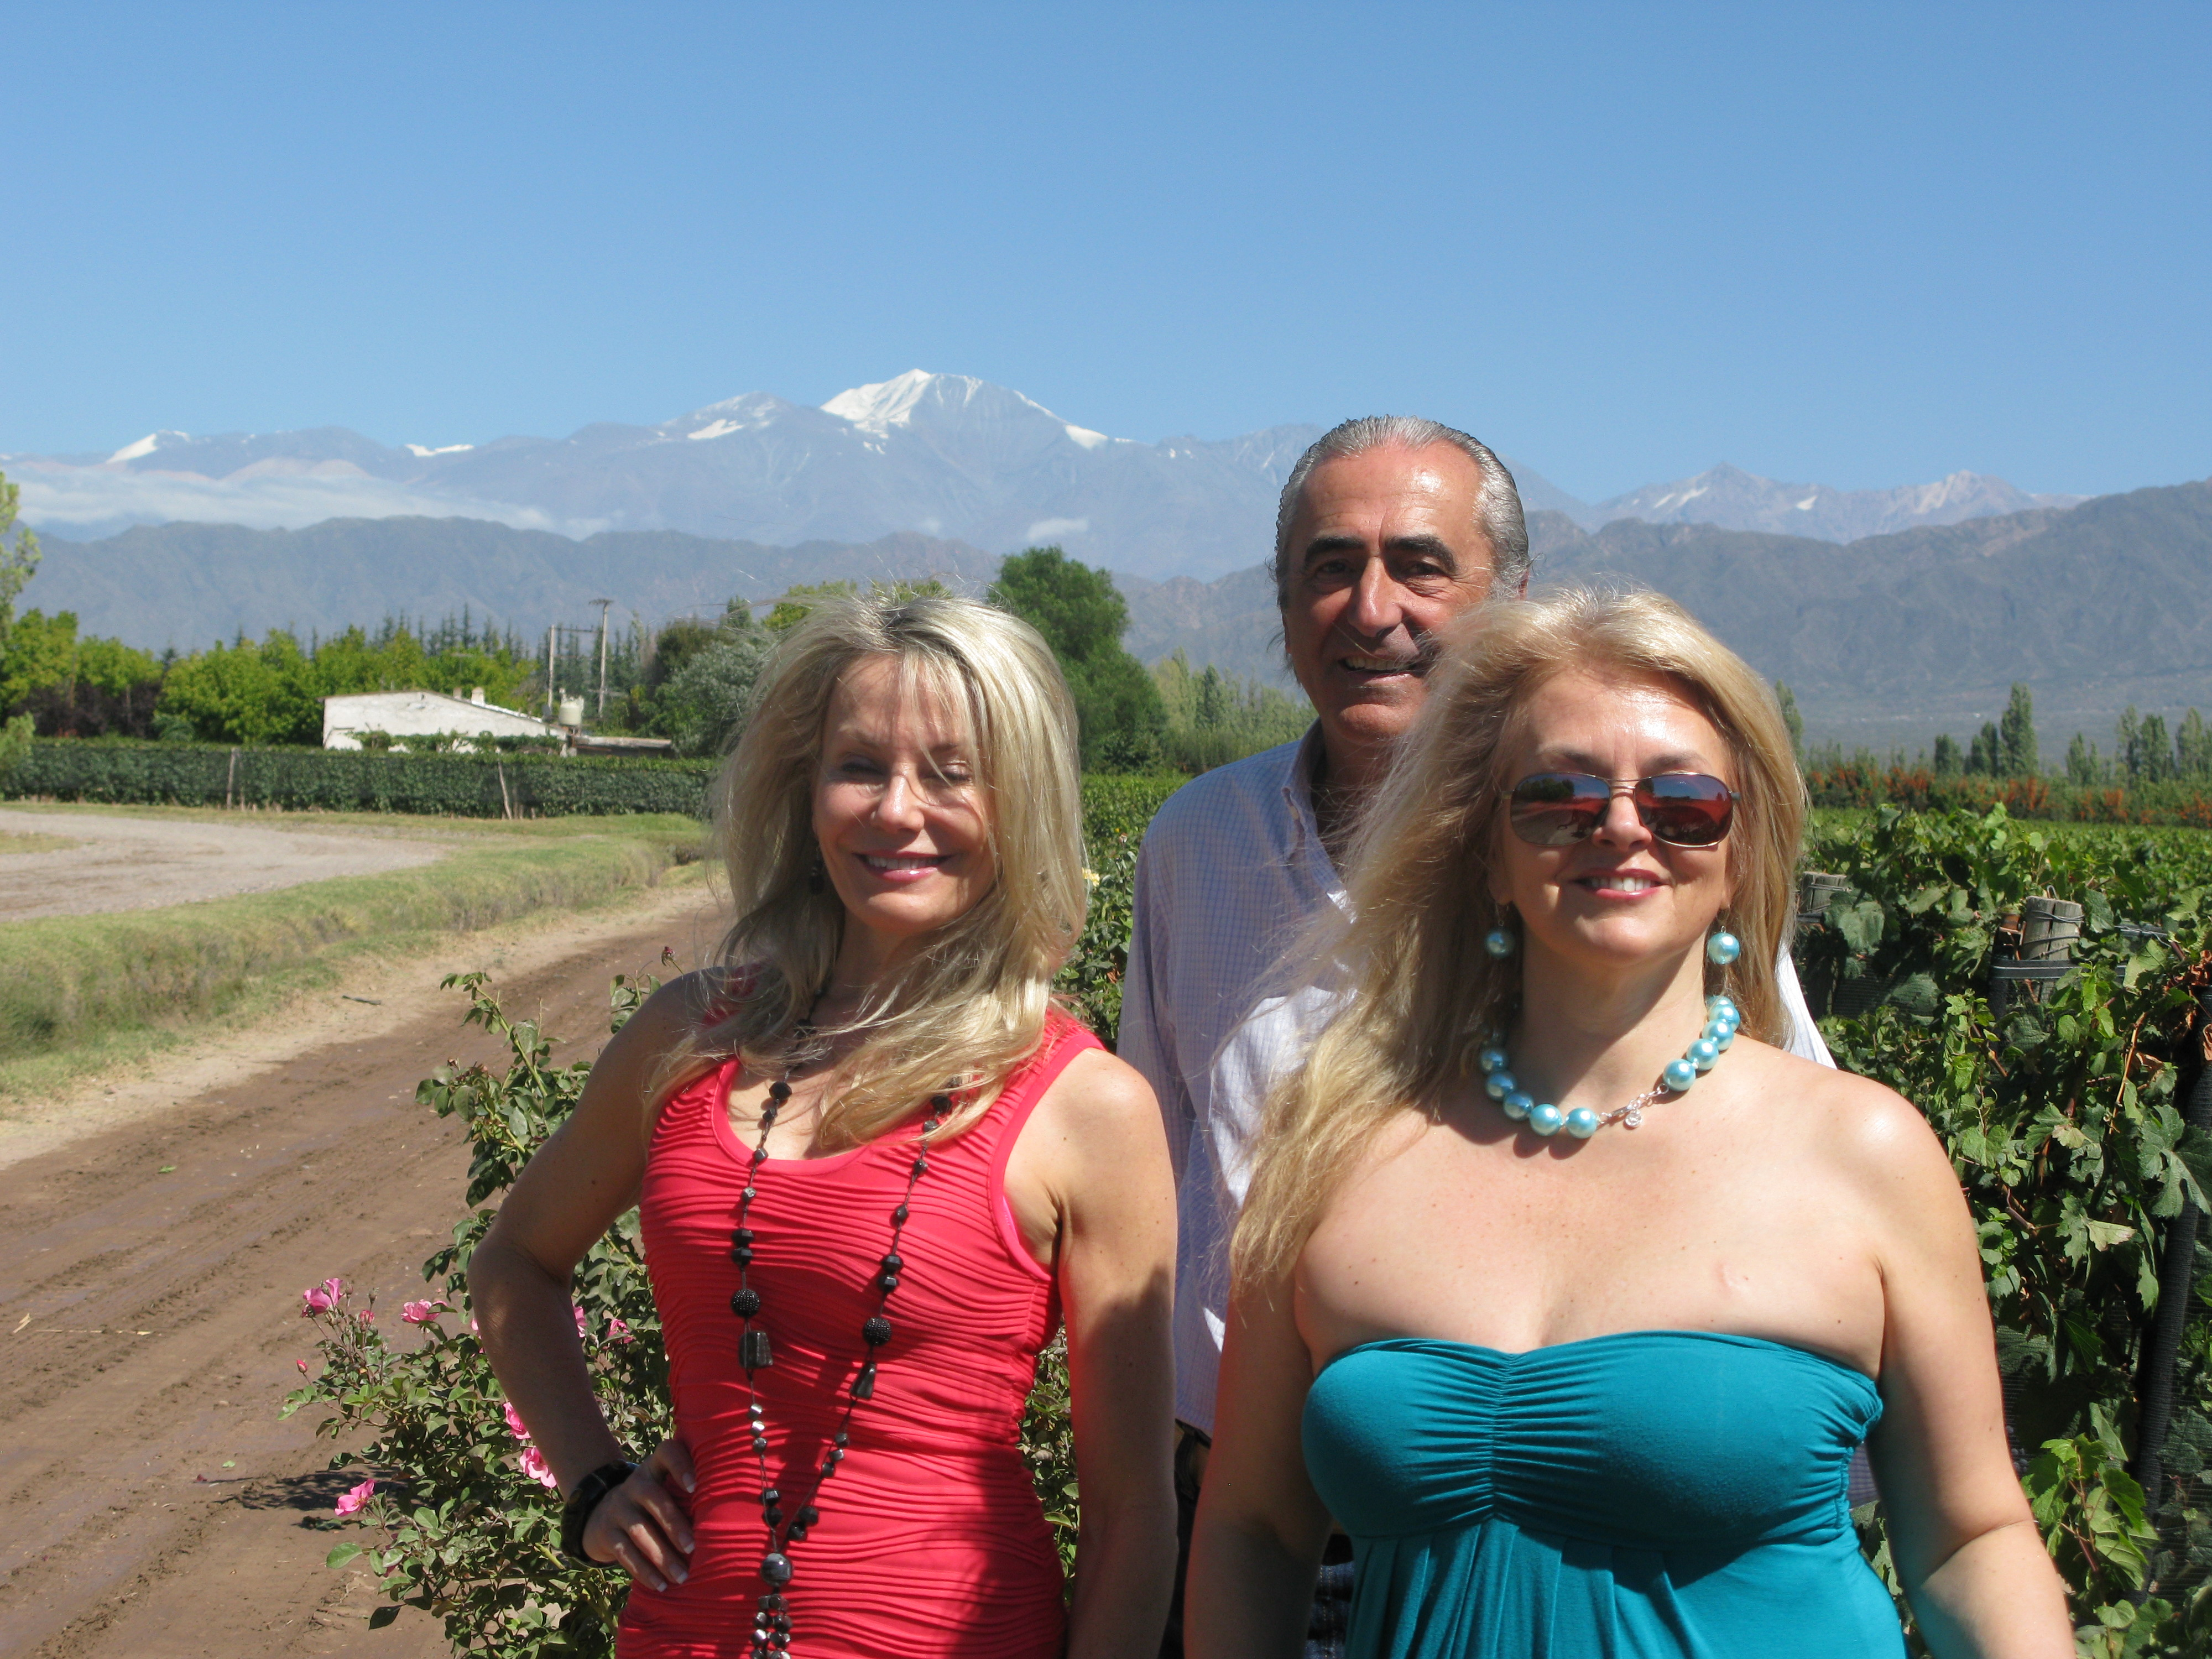 The Andes,Cordon del Plata peak makes a stunning back drop to the Fabre Montmayou vineyards.